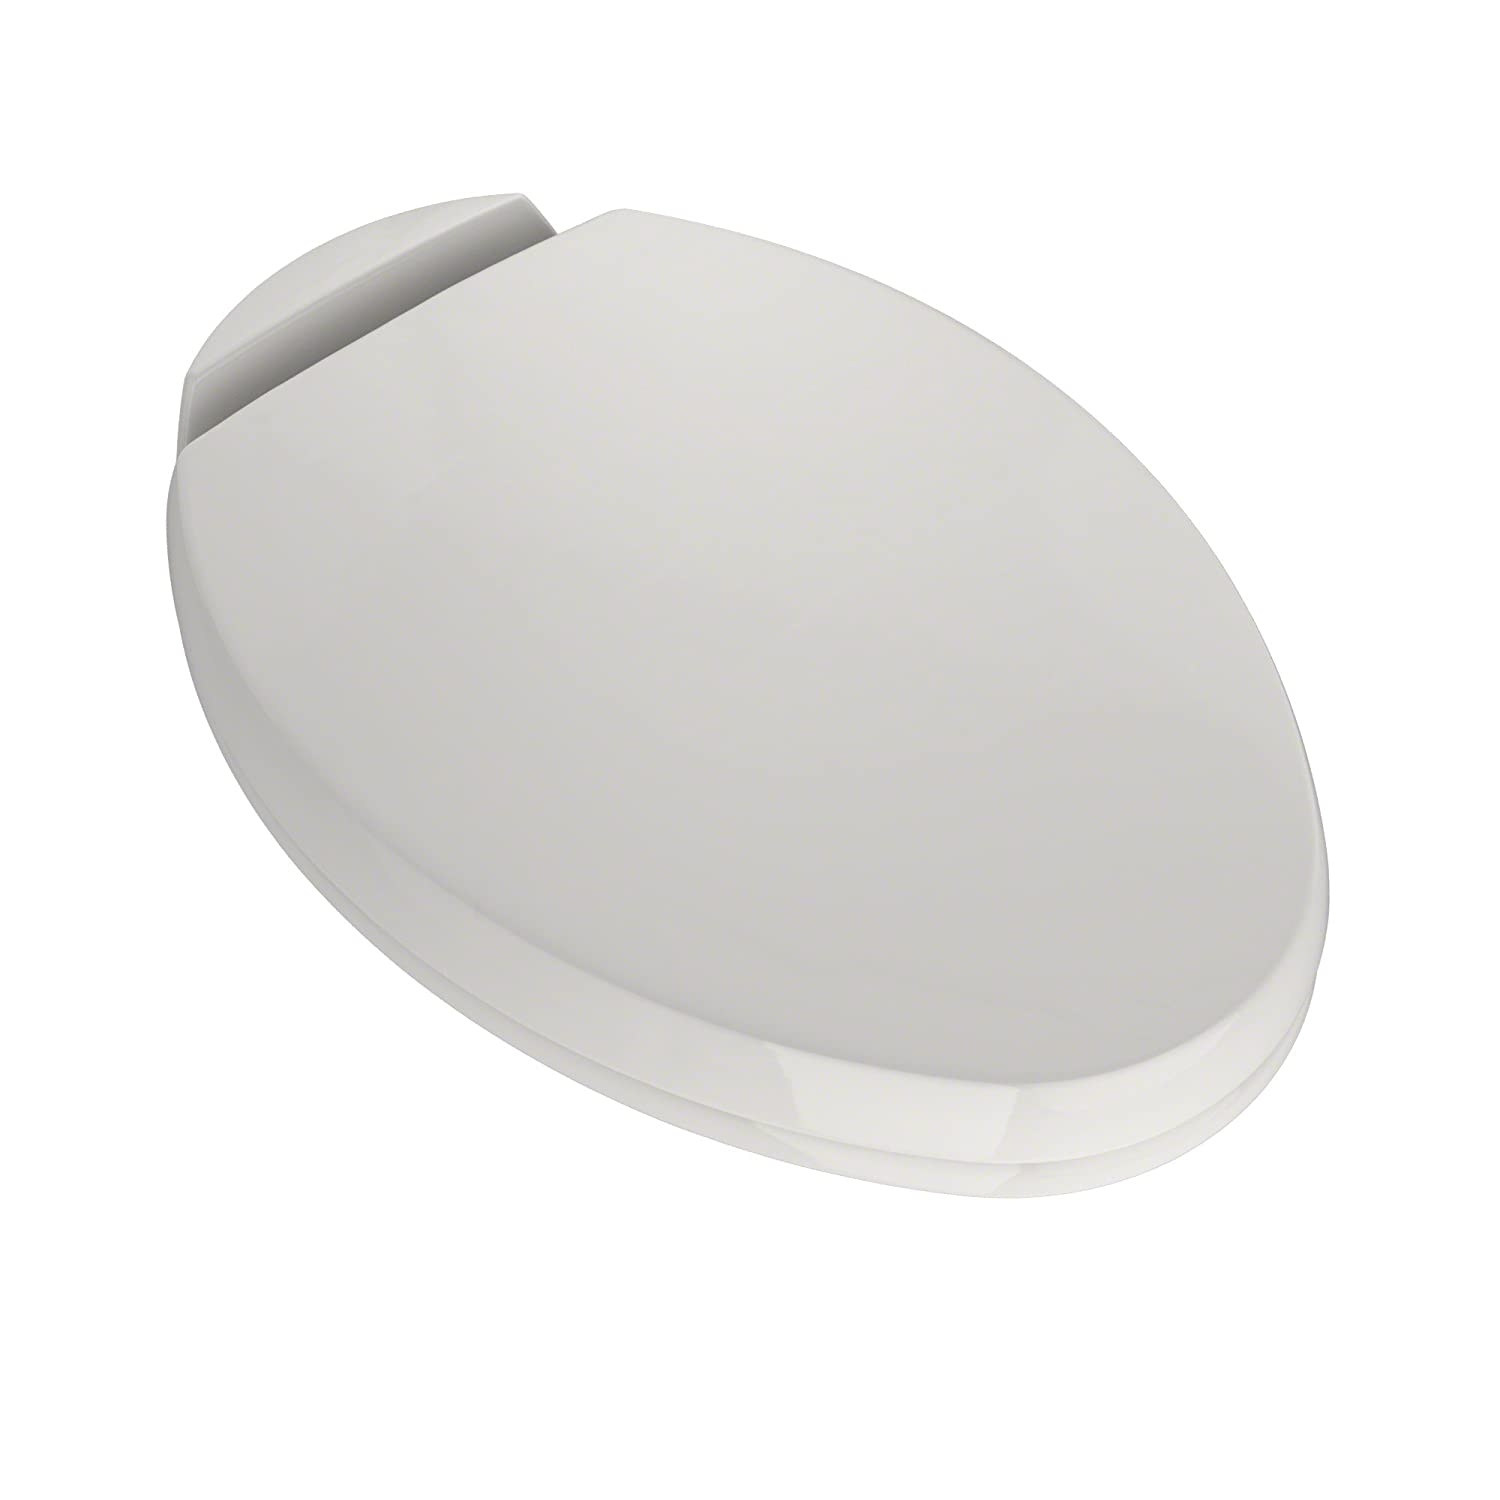 TOTO SS204-11 Contemporary SoftClose Oval Toilet Seat Colonial White